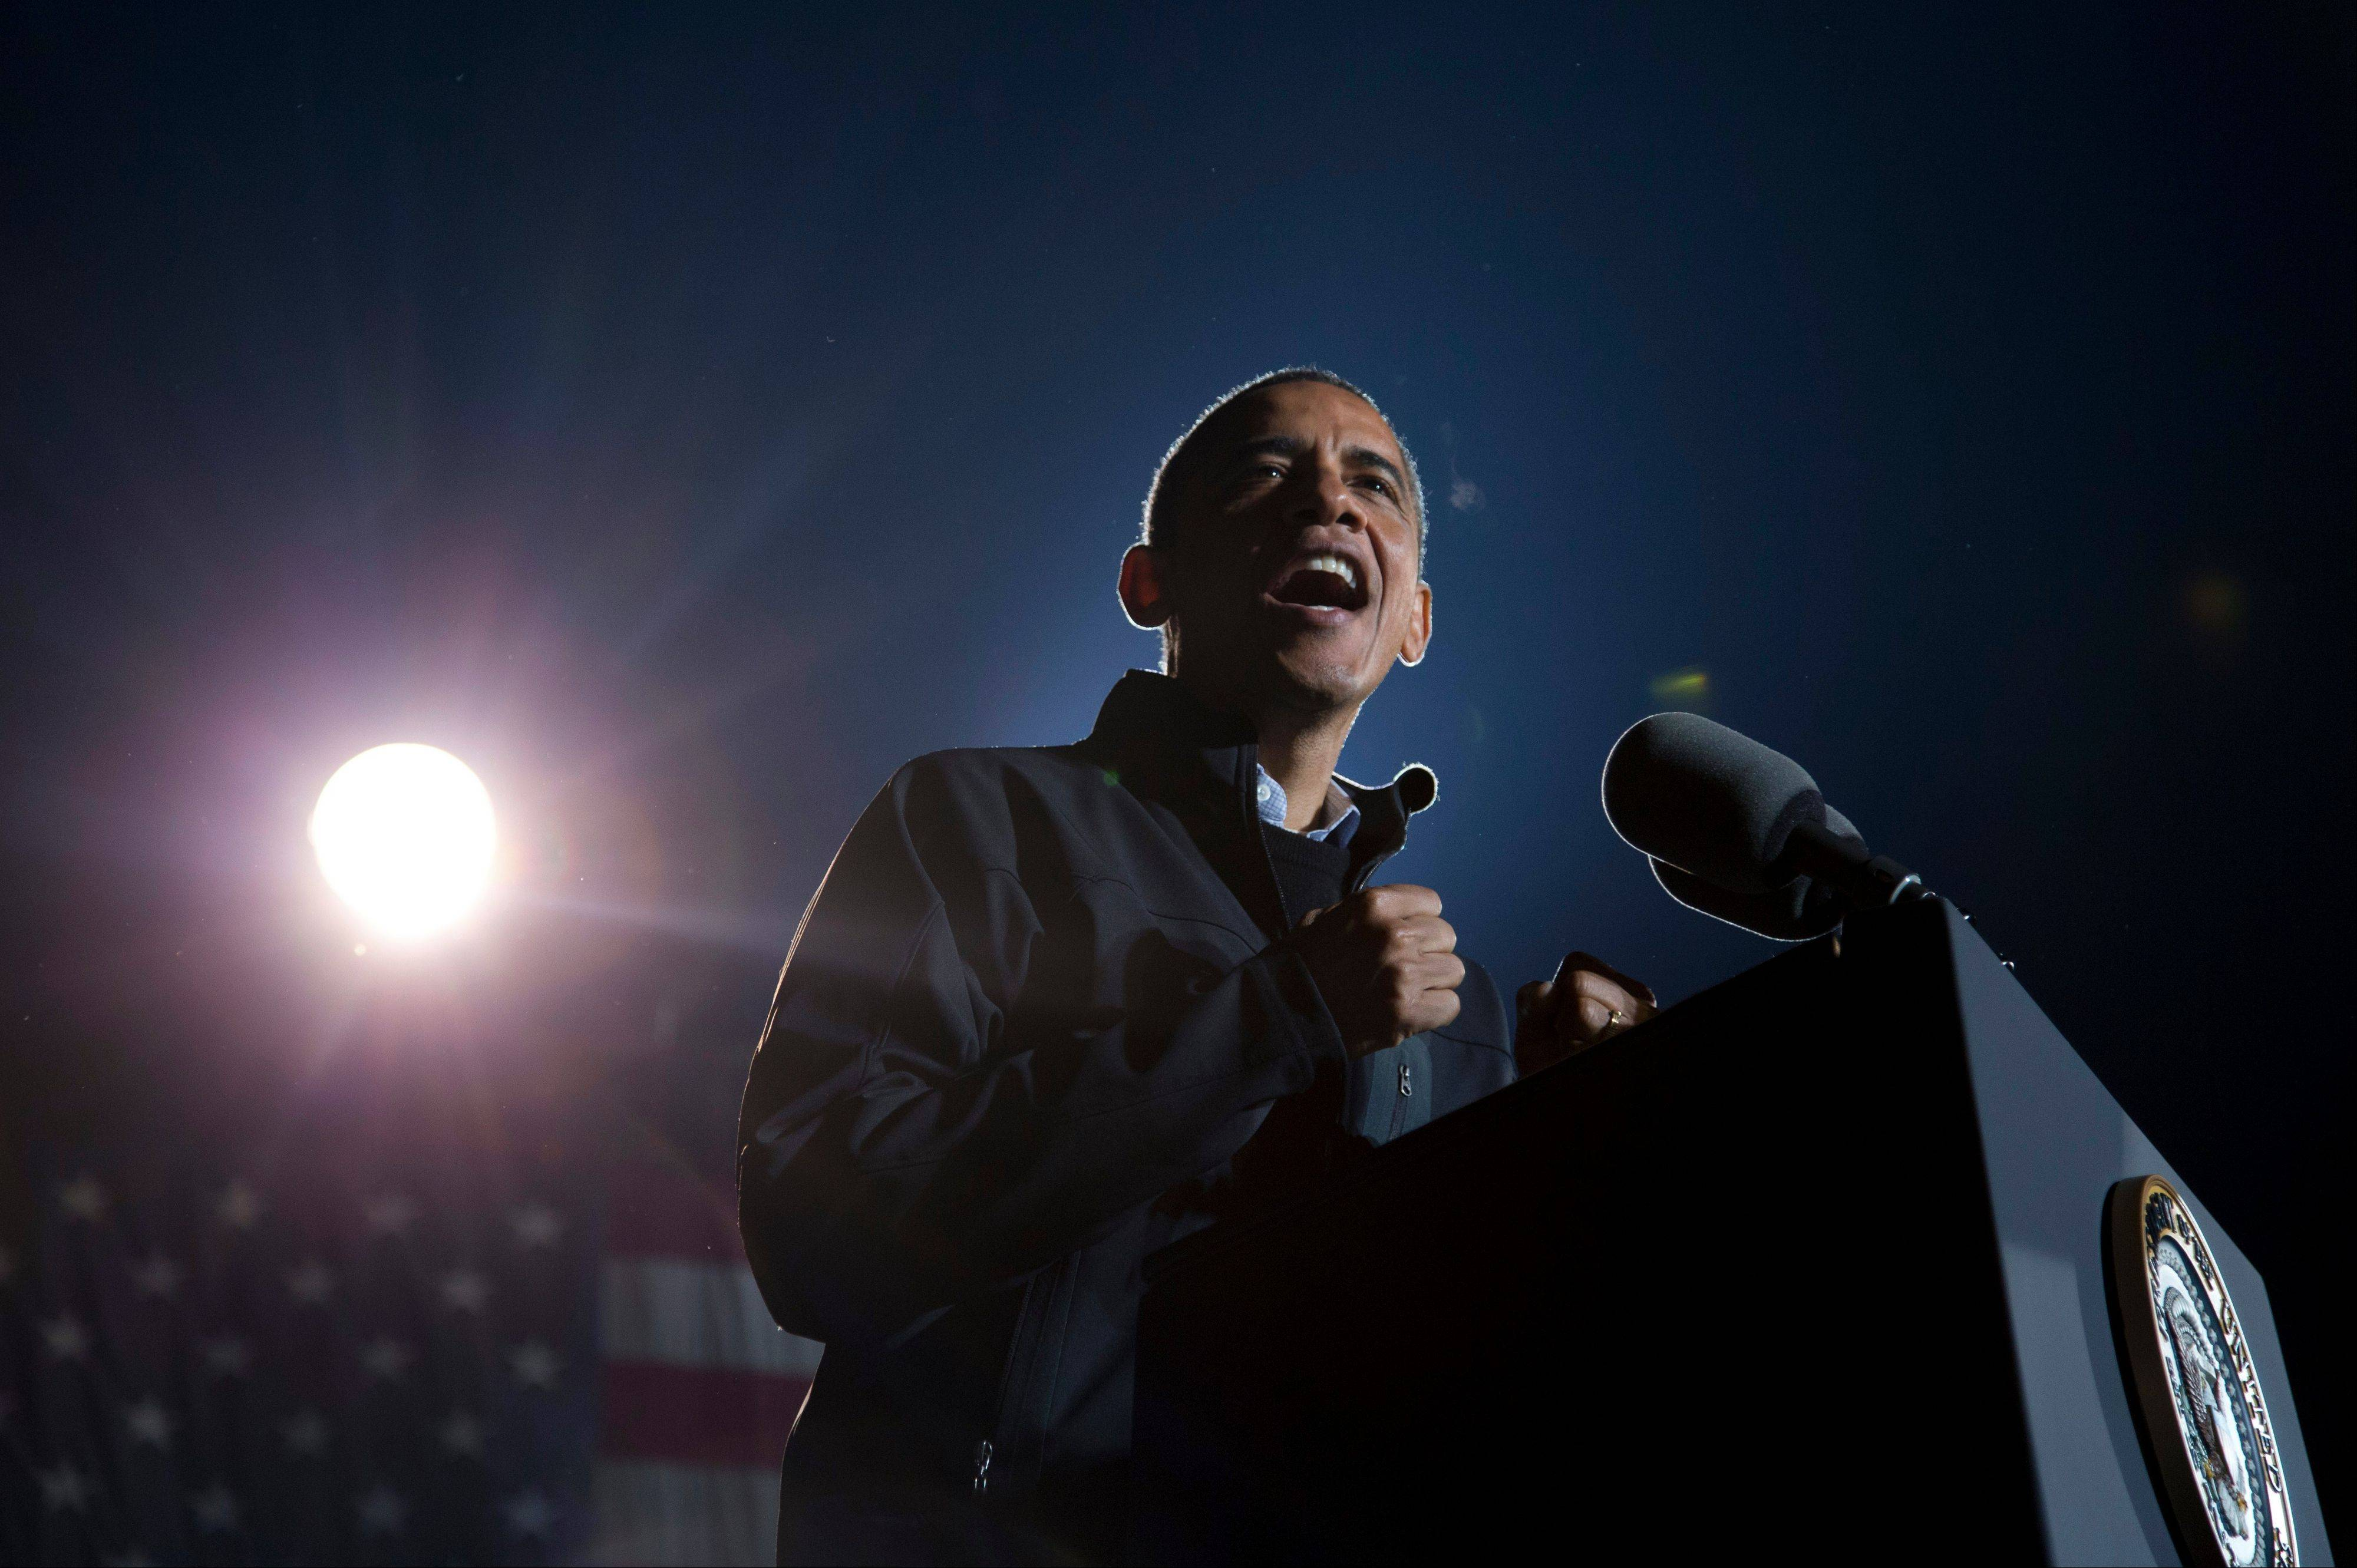 President Barack Obama gestures as he speaks at his final campaign stop on the evening before the 2012 election, Monday, Nov. 5, 2012, in Des Moines, Iowa.